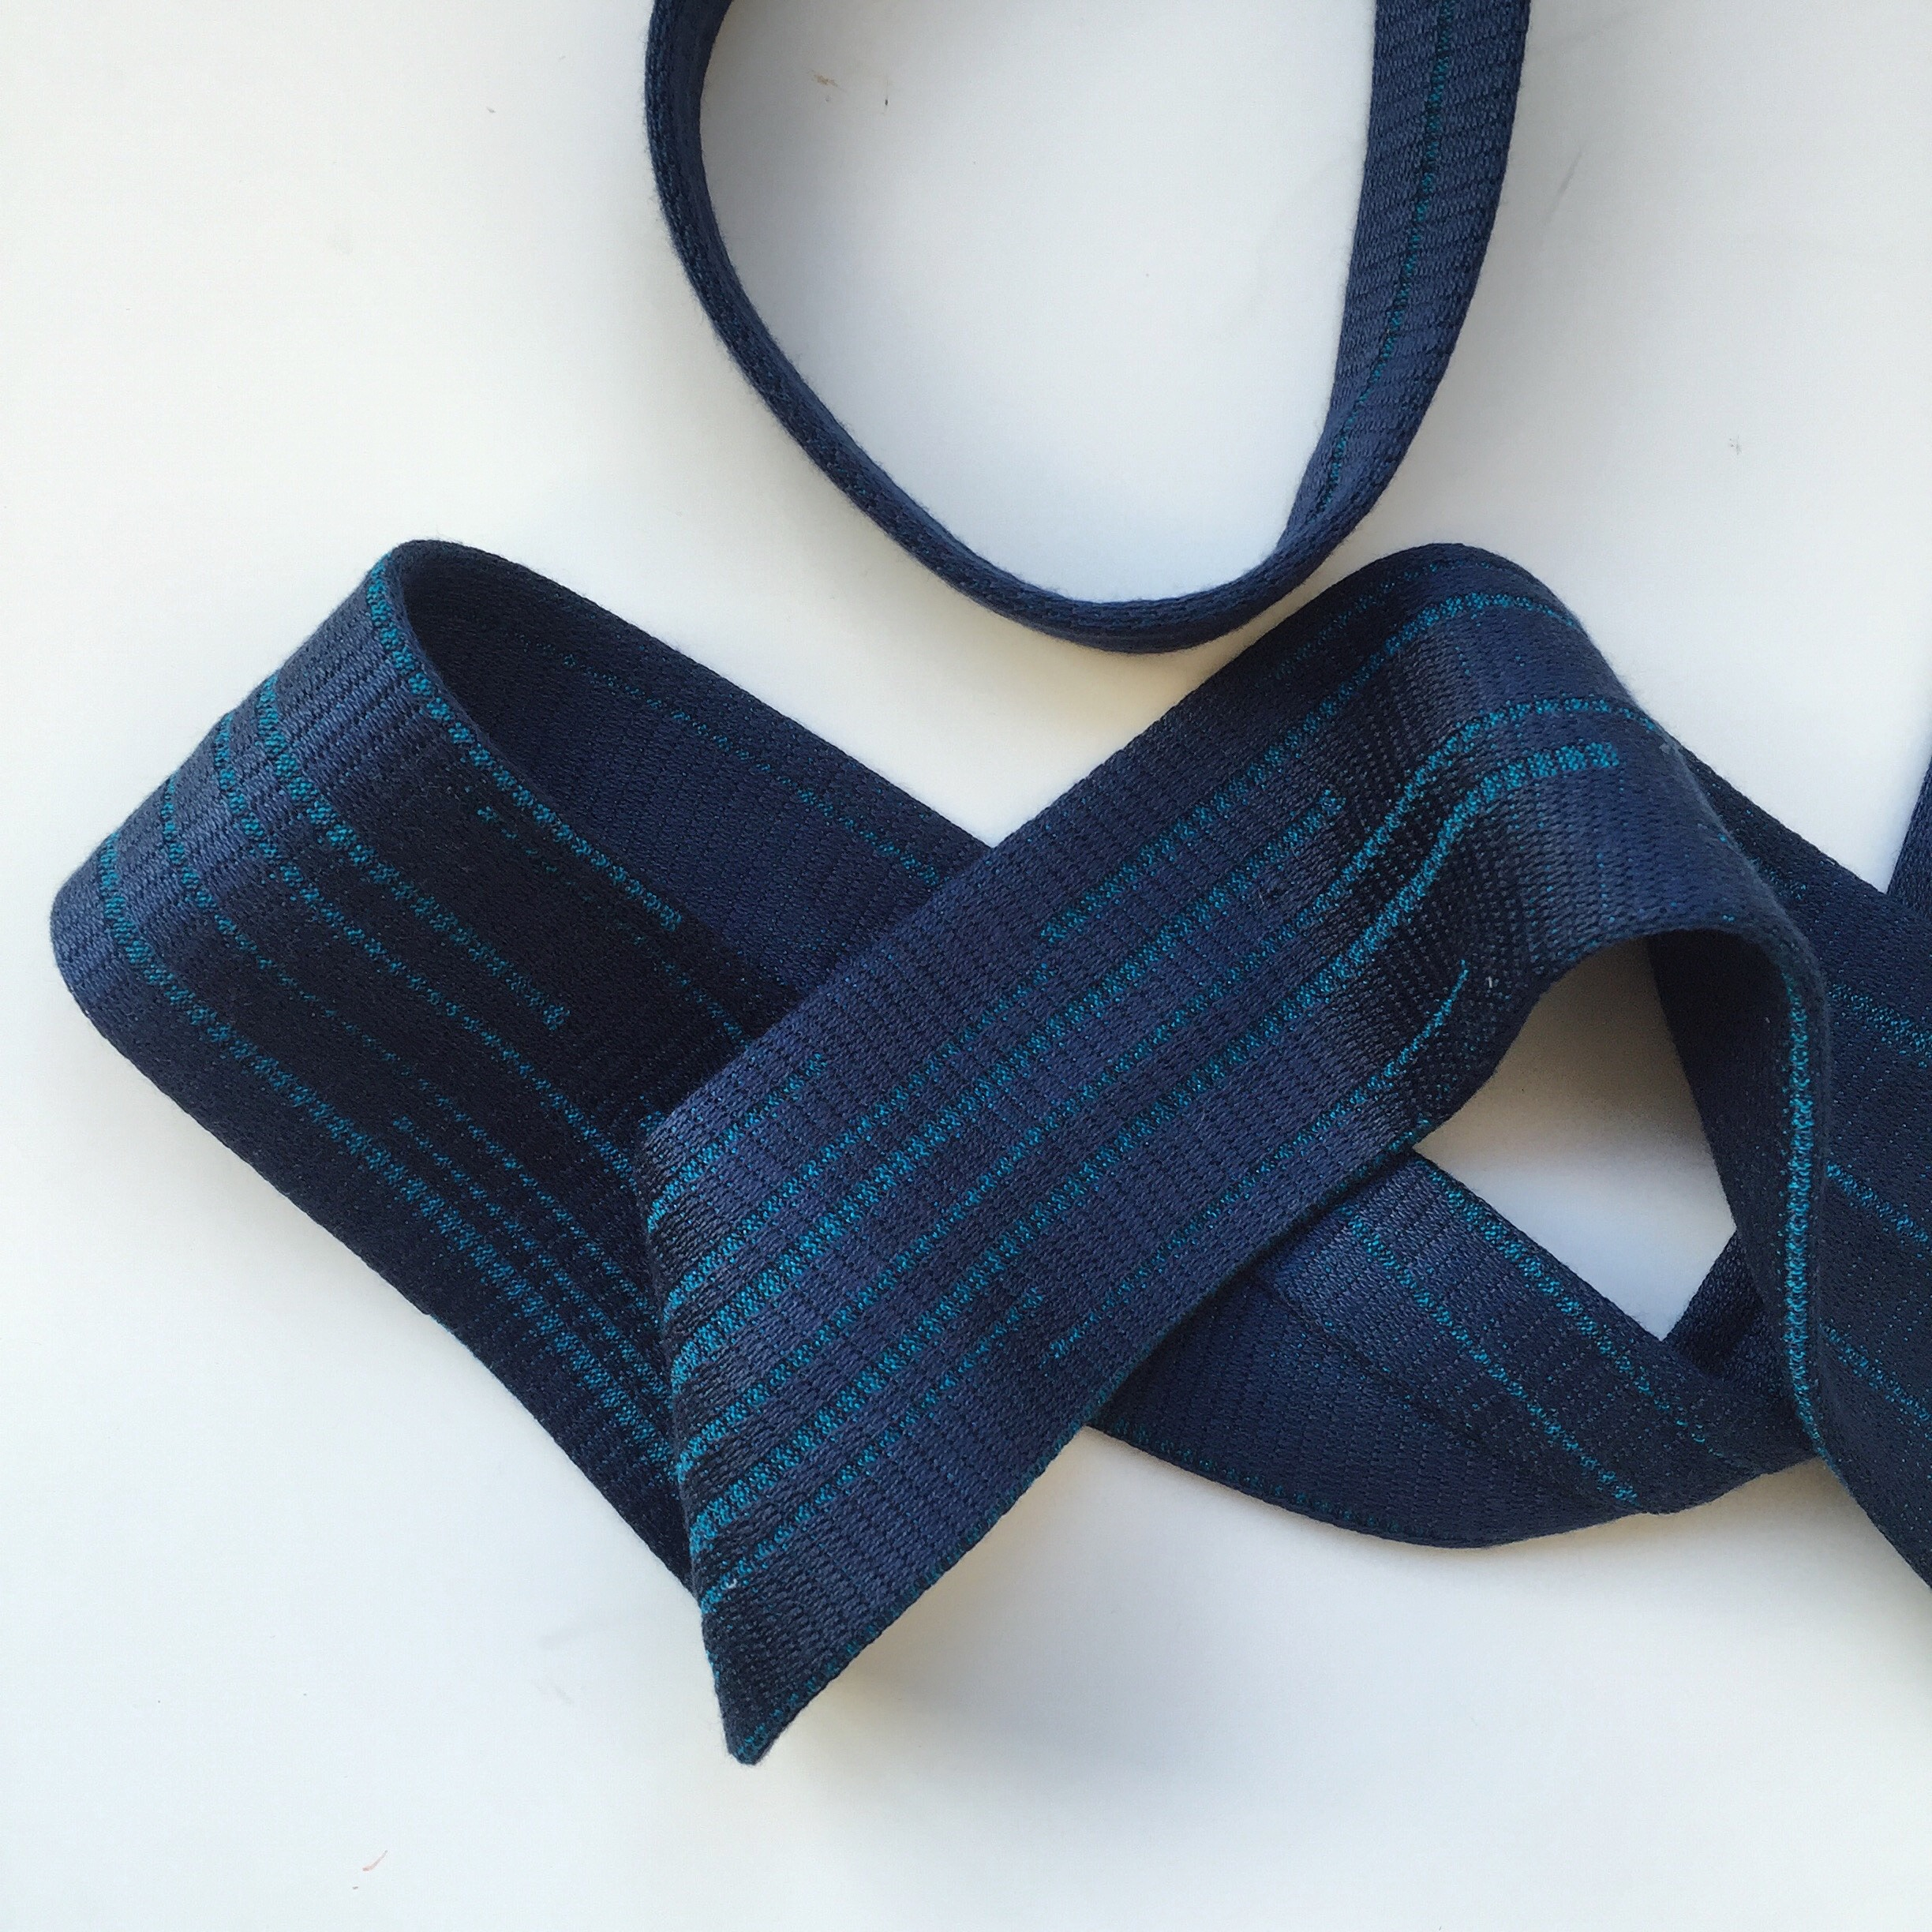 Customised silk knitted tie in blue.